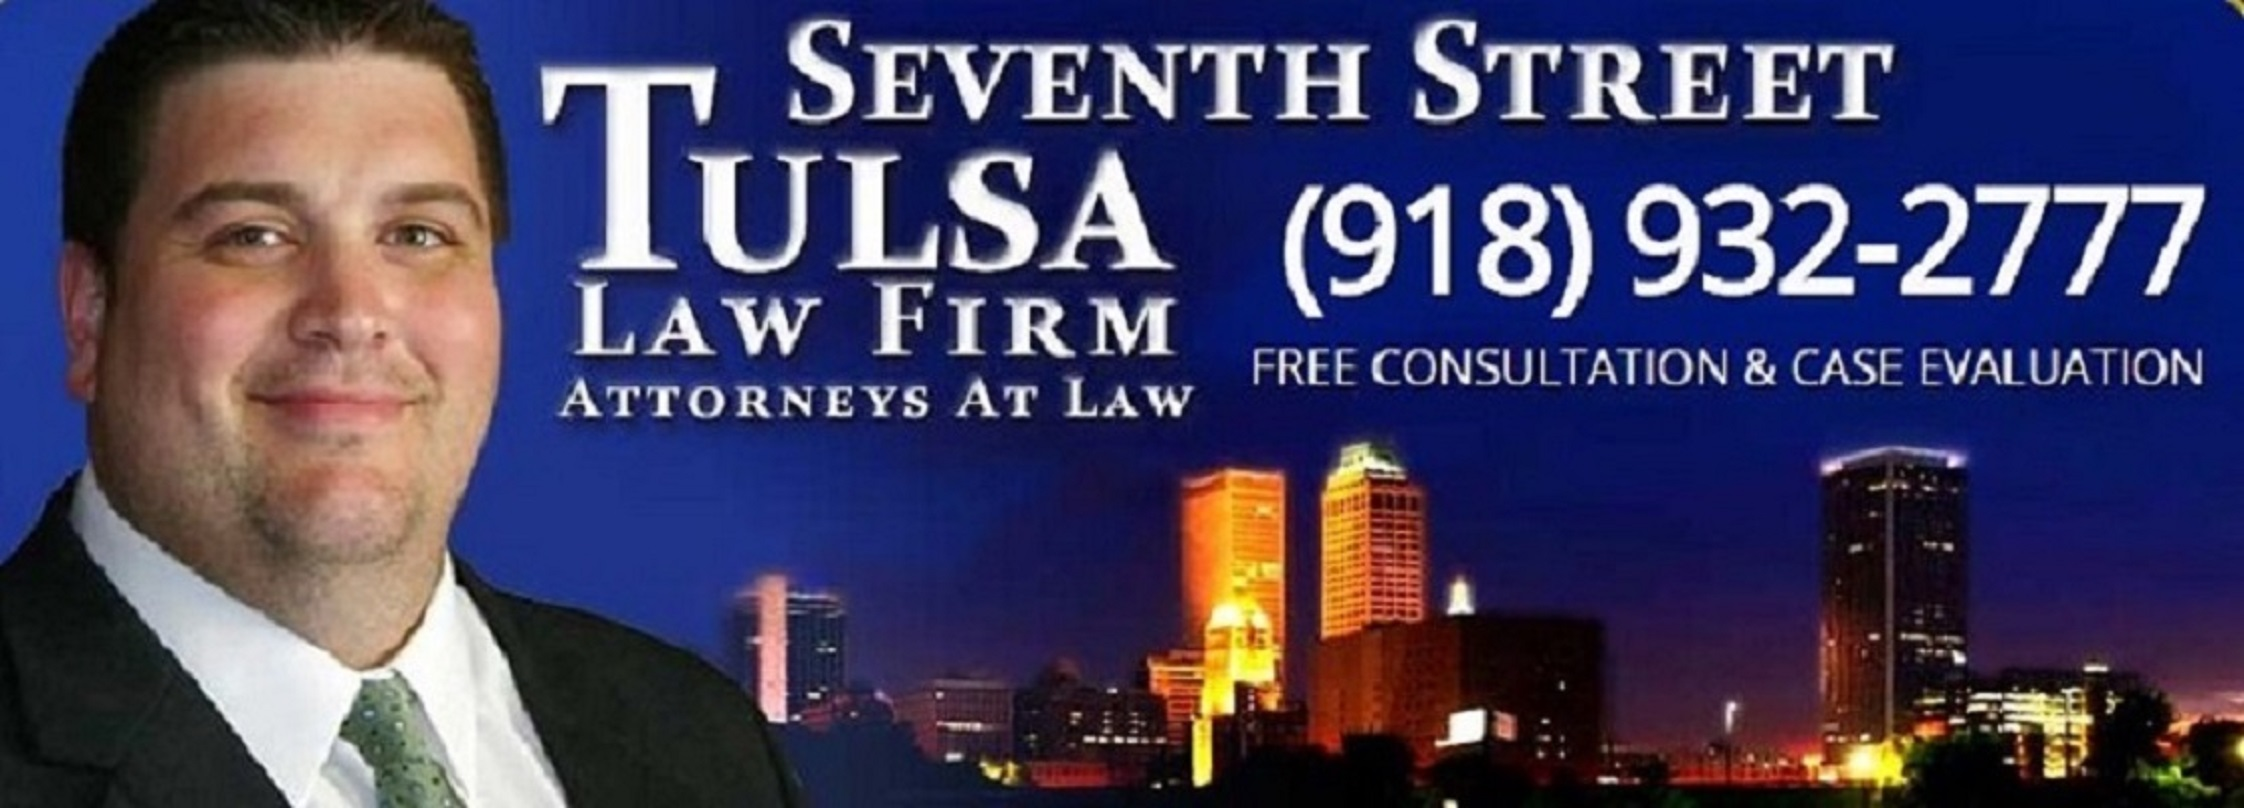 Seventh Street Tulsa Law Office